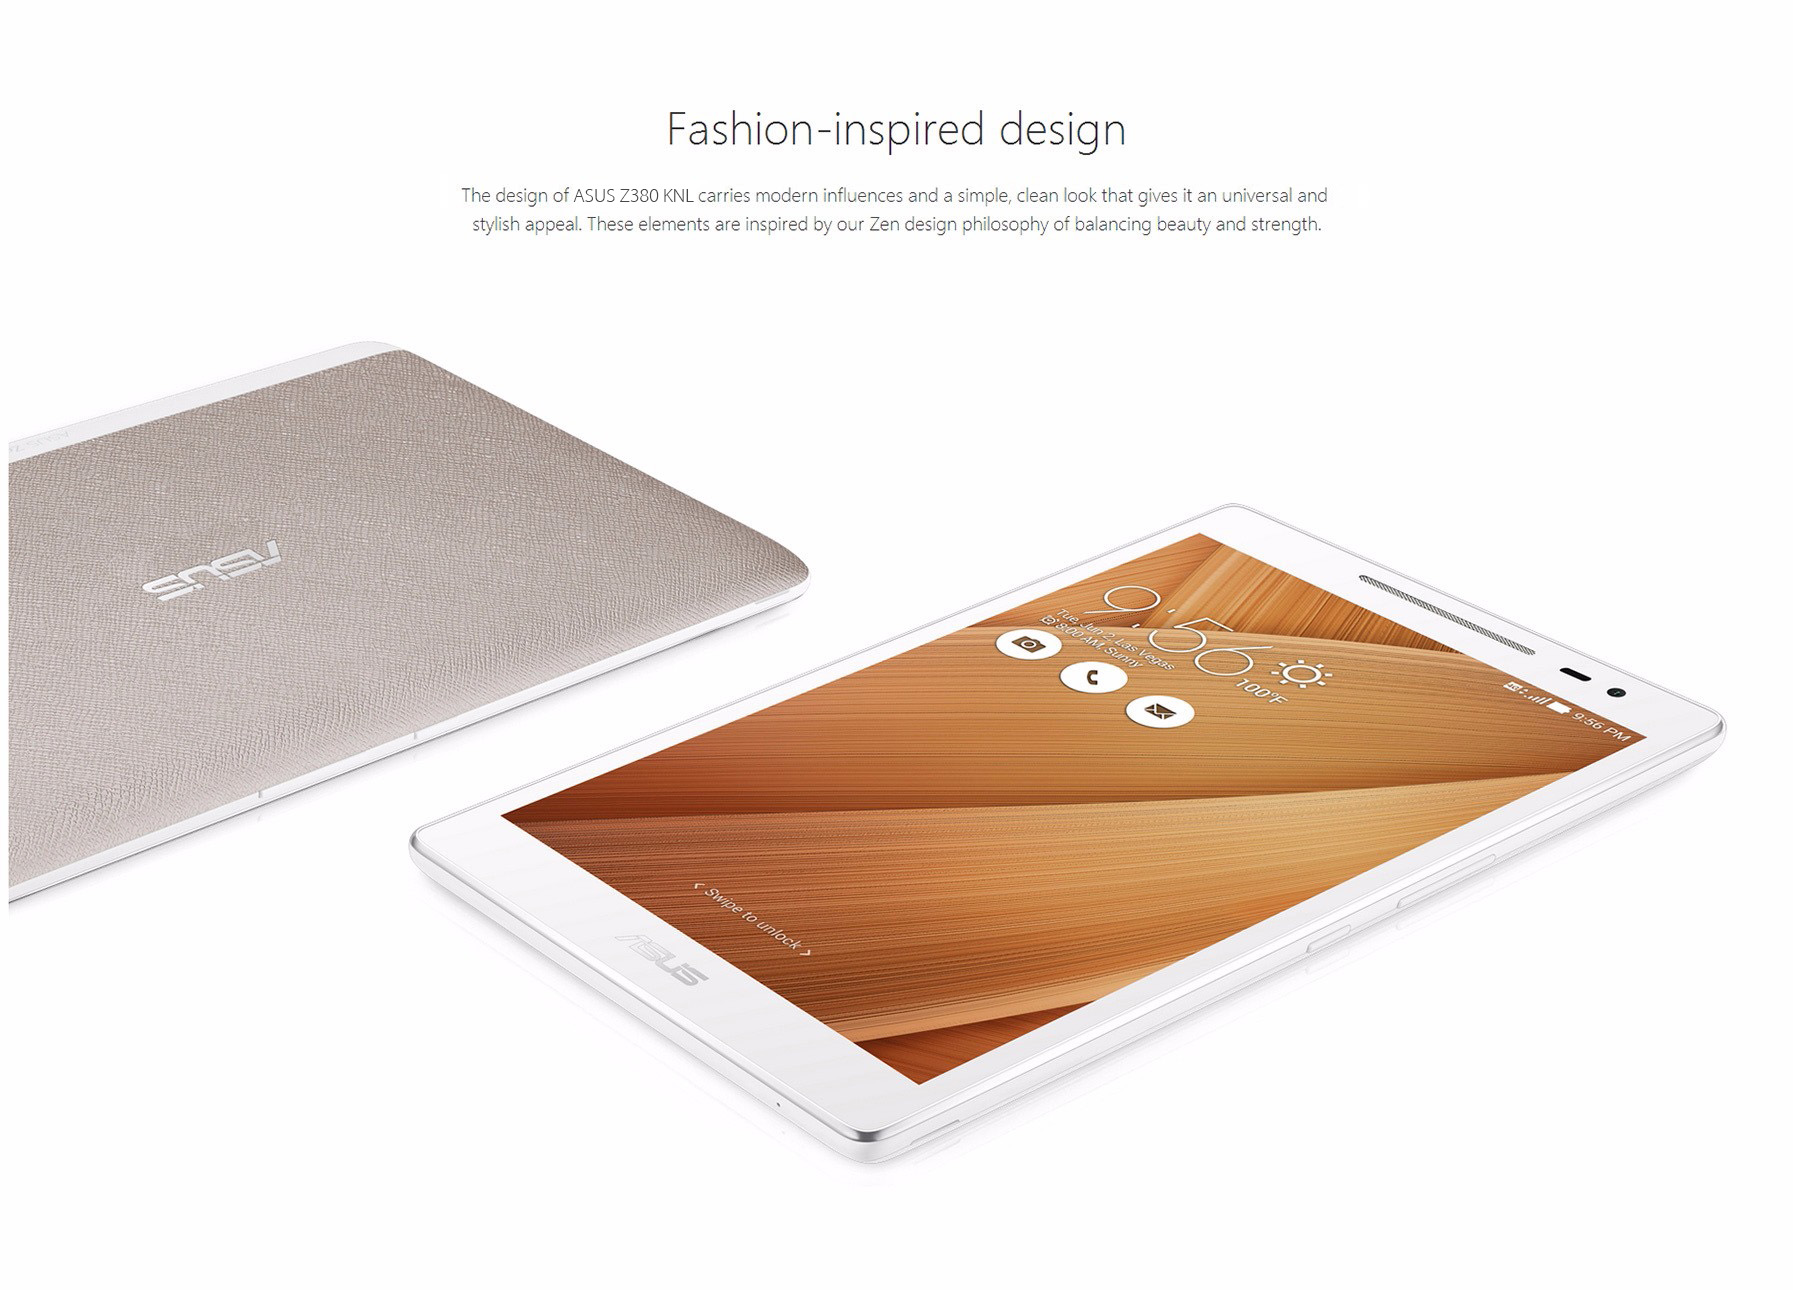 ASUS Z380 KNL Fashion Version 4G Phone Tablet PC 8.0 inch Android 6.0 IPS OGS Screen Qualcomm MSM8929 Octa Core 1.0GHz 2GB RAM 16GB ROM Ambient Light Sensor